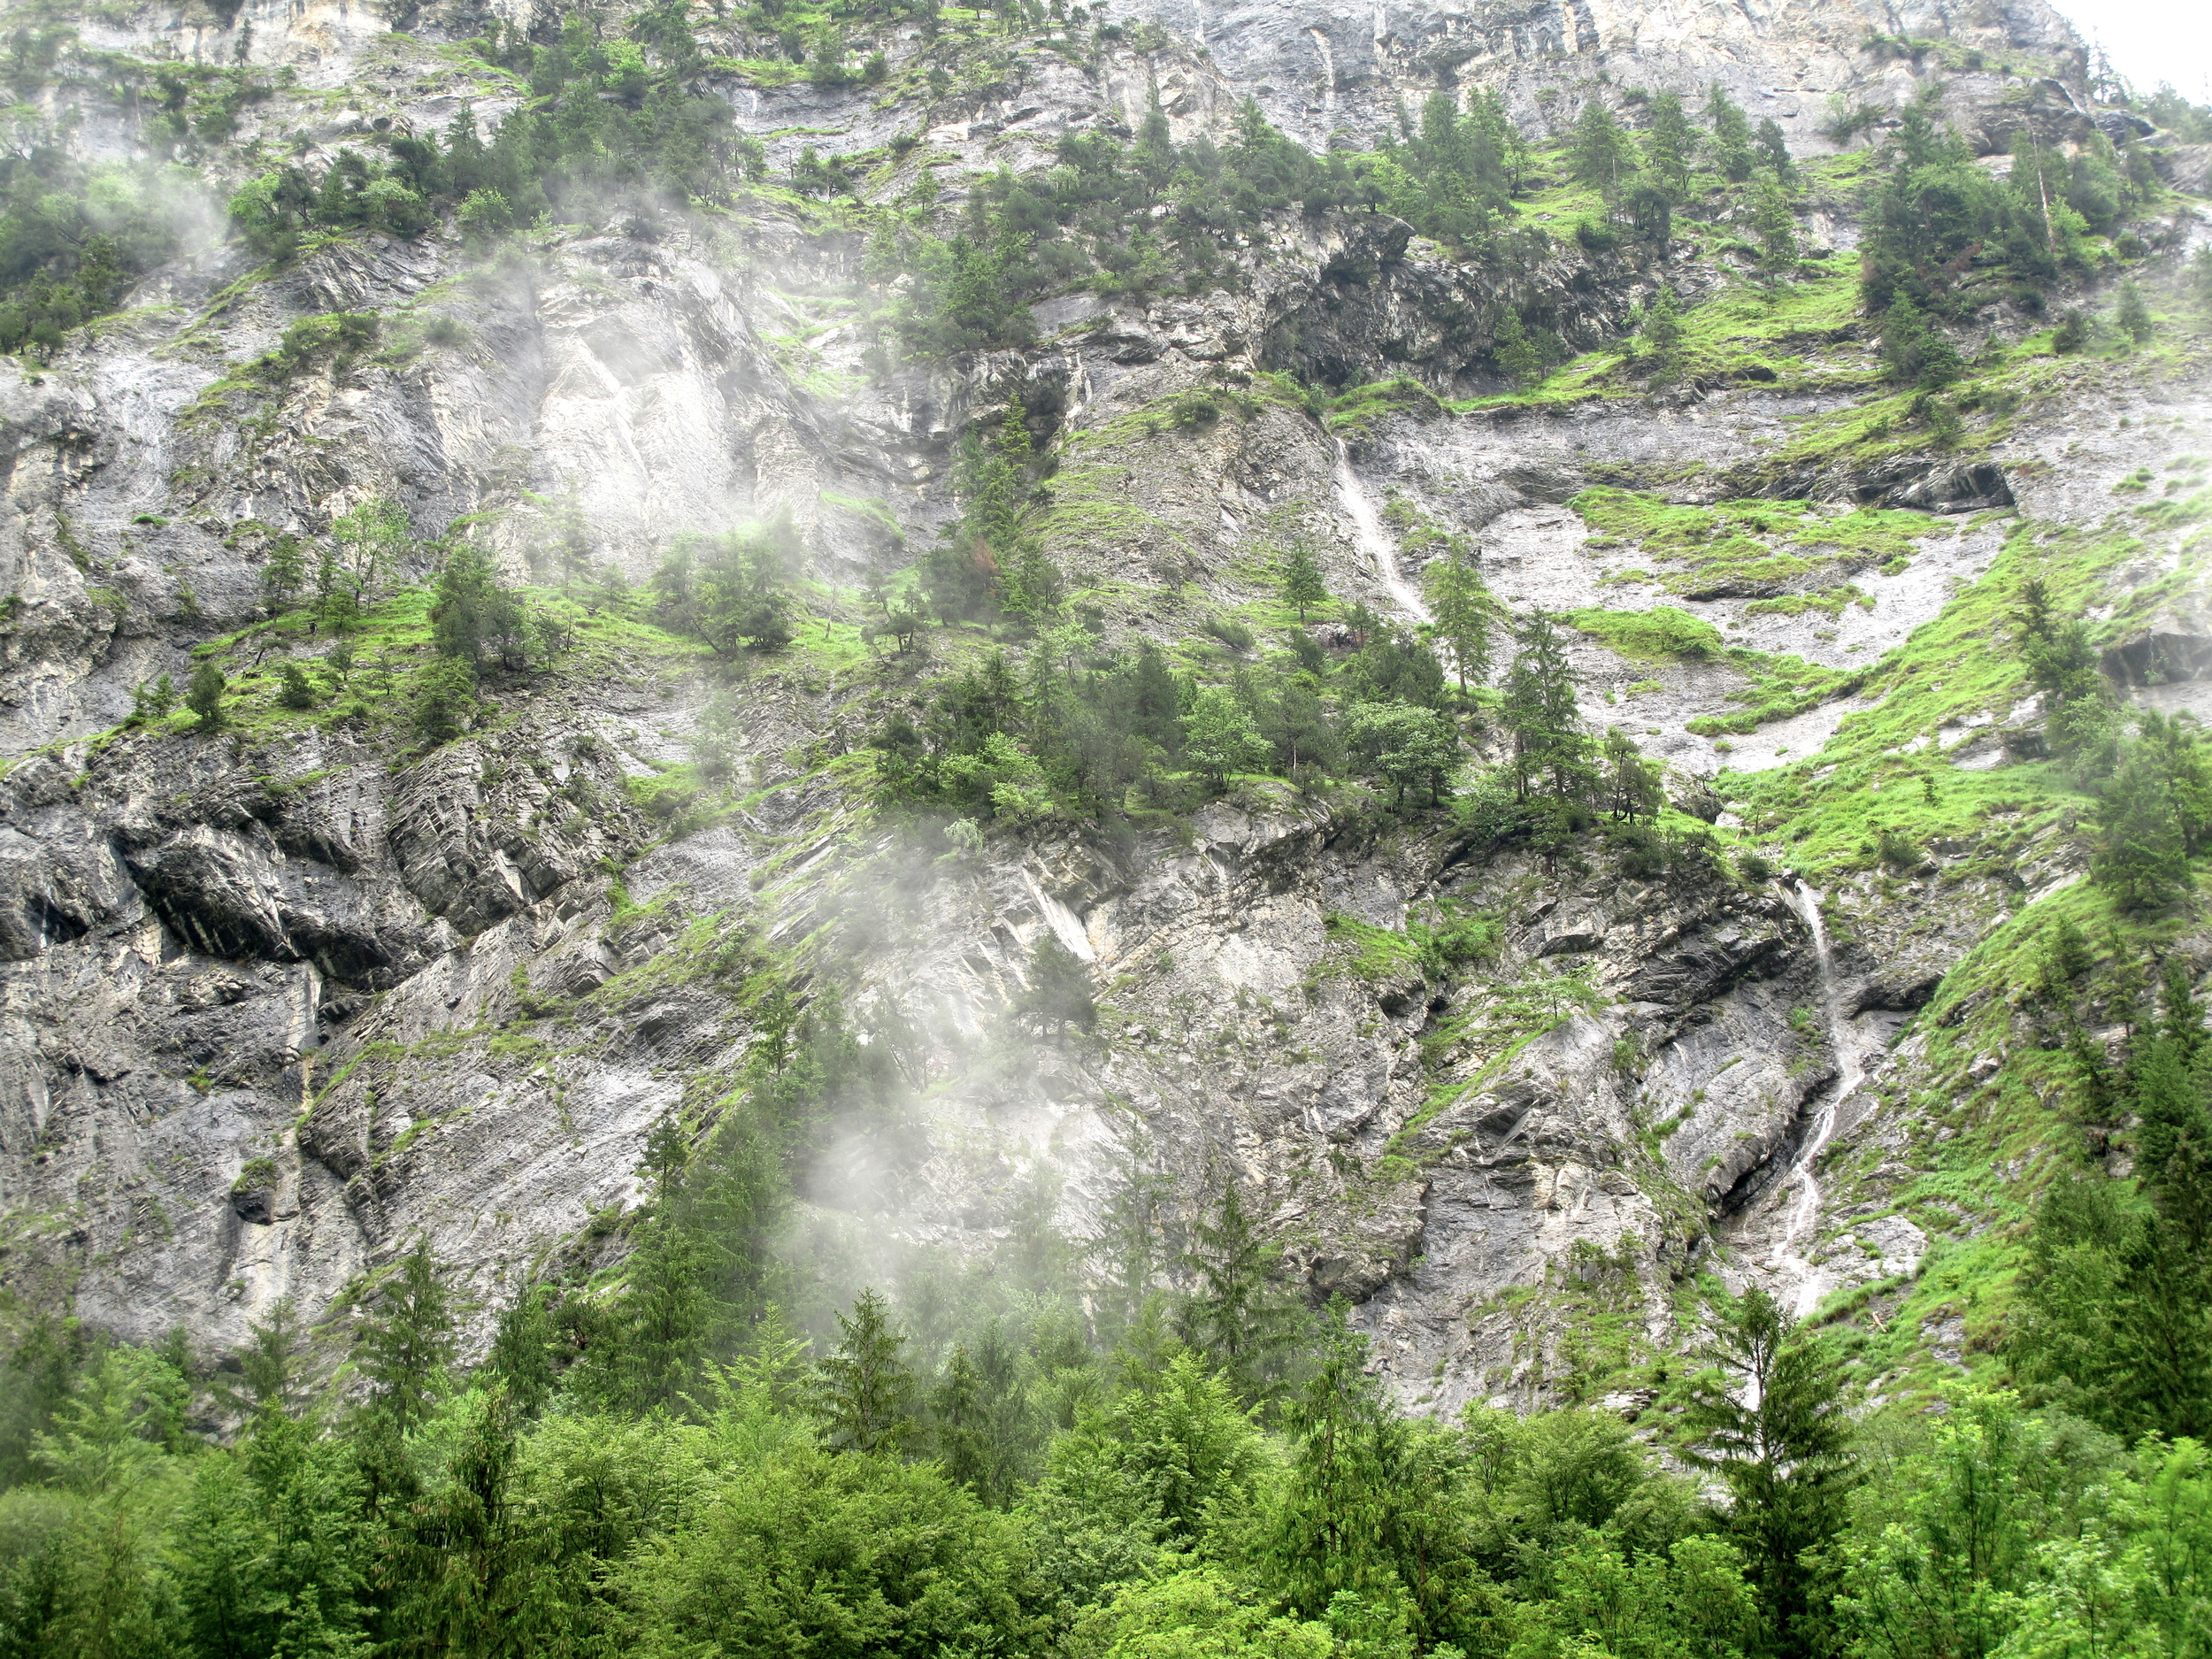 Beautiful alpine scene of swiss mountains, rocks, moss and small pine trees all shrouded in clouds